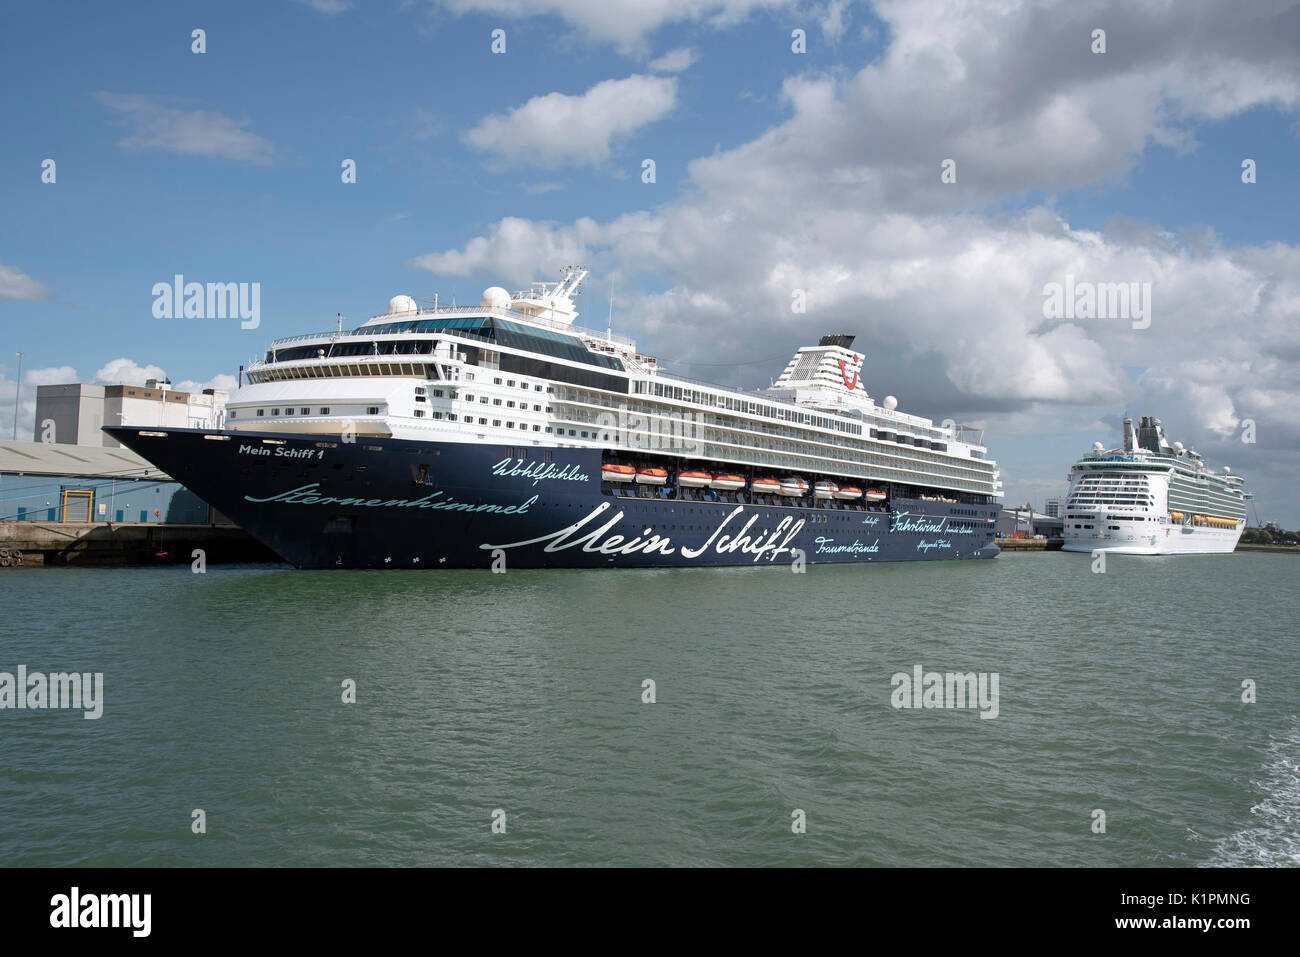 Cruise ship Mein Schiffi 1 on a stopover in the Port of Southampton England UK. August 2017 - Stock Image